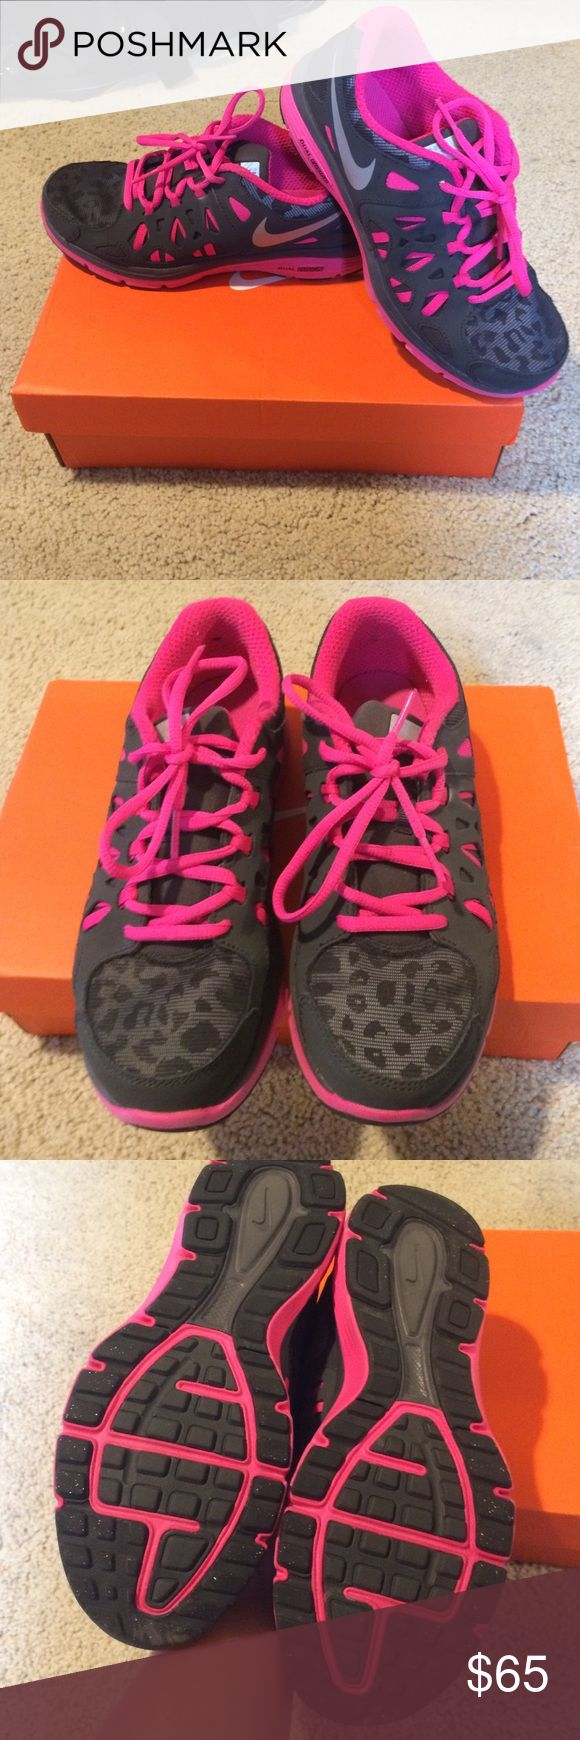 BNWOT reflective leopard Nikes - FINAL PRICE Brand-new barely worn hot pink, gray, and leopard reflection Nikes! Size 6Y which all your Nike lovers know it fits any woman size 7! Nike Shoes Sneakers